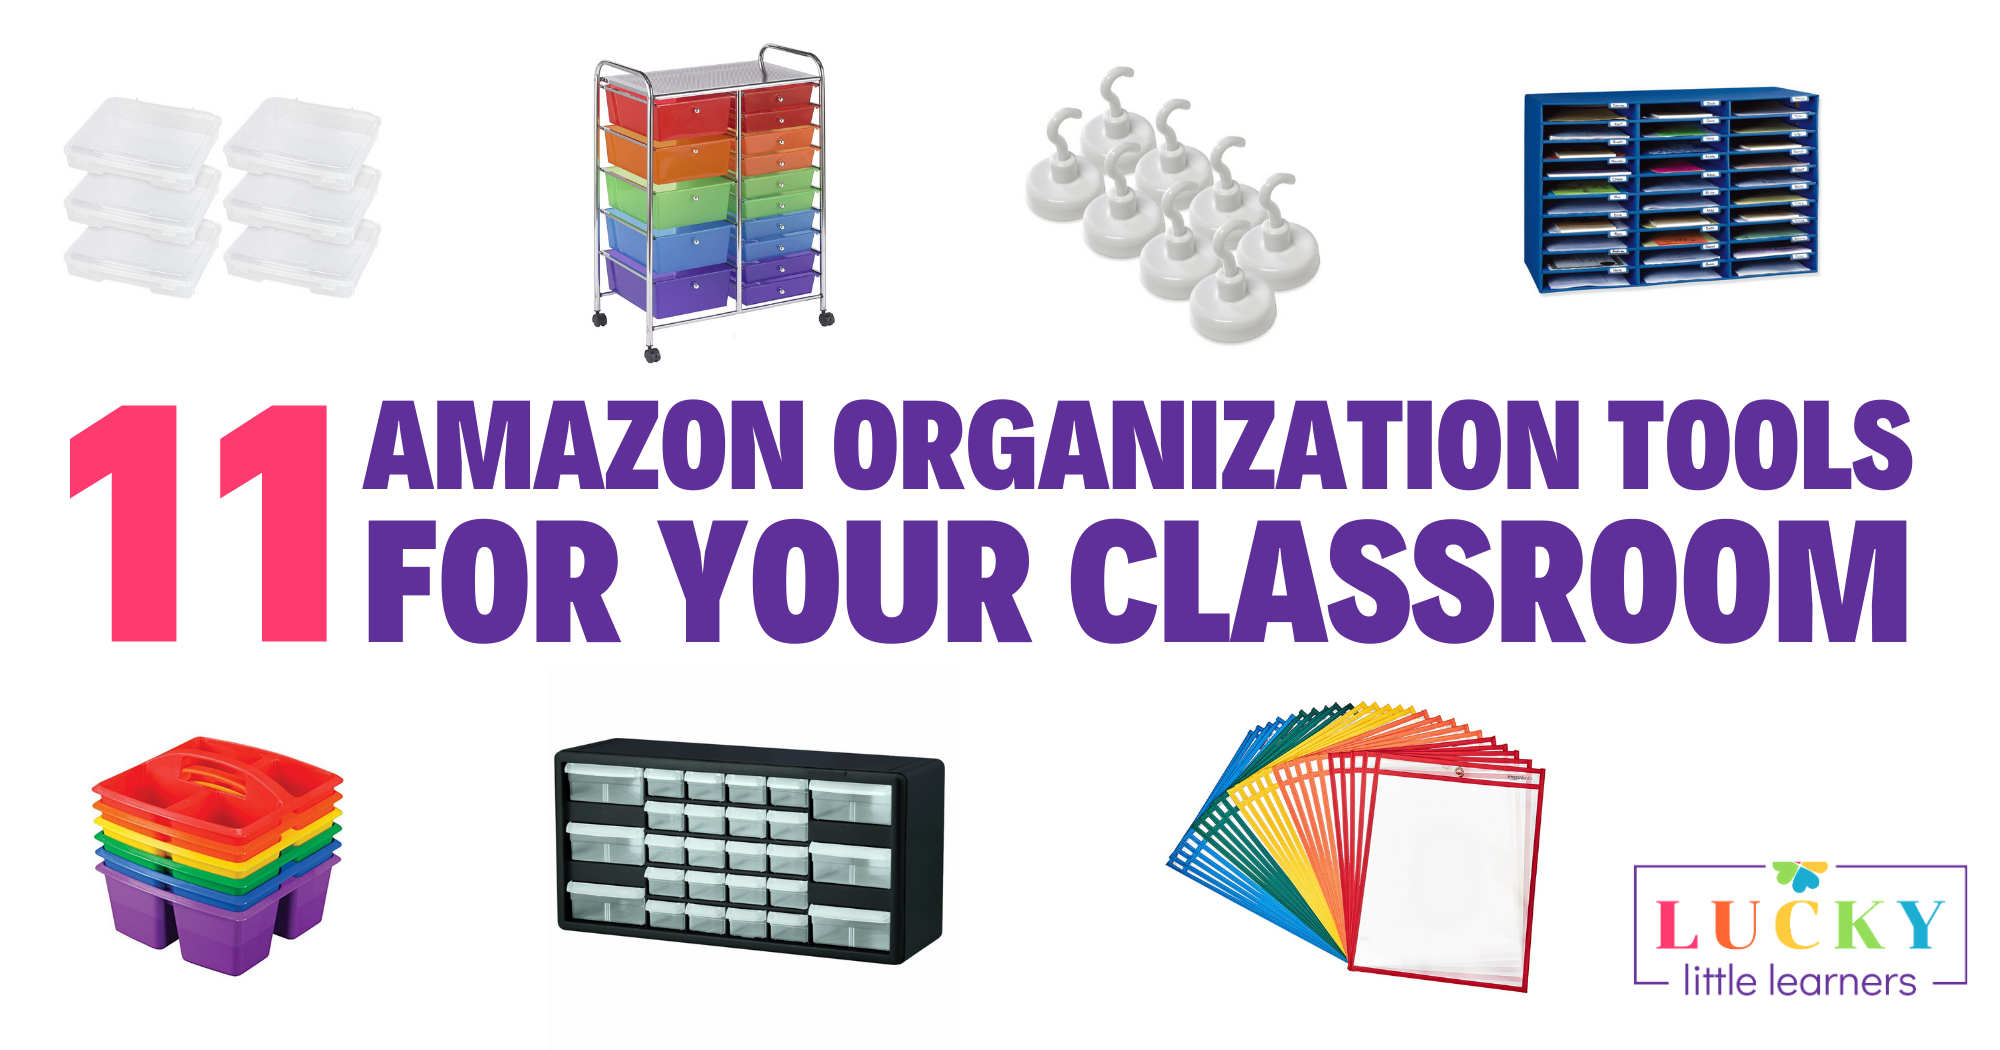 11 Amazon Organization Tools For Your Classroom